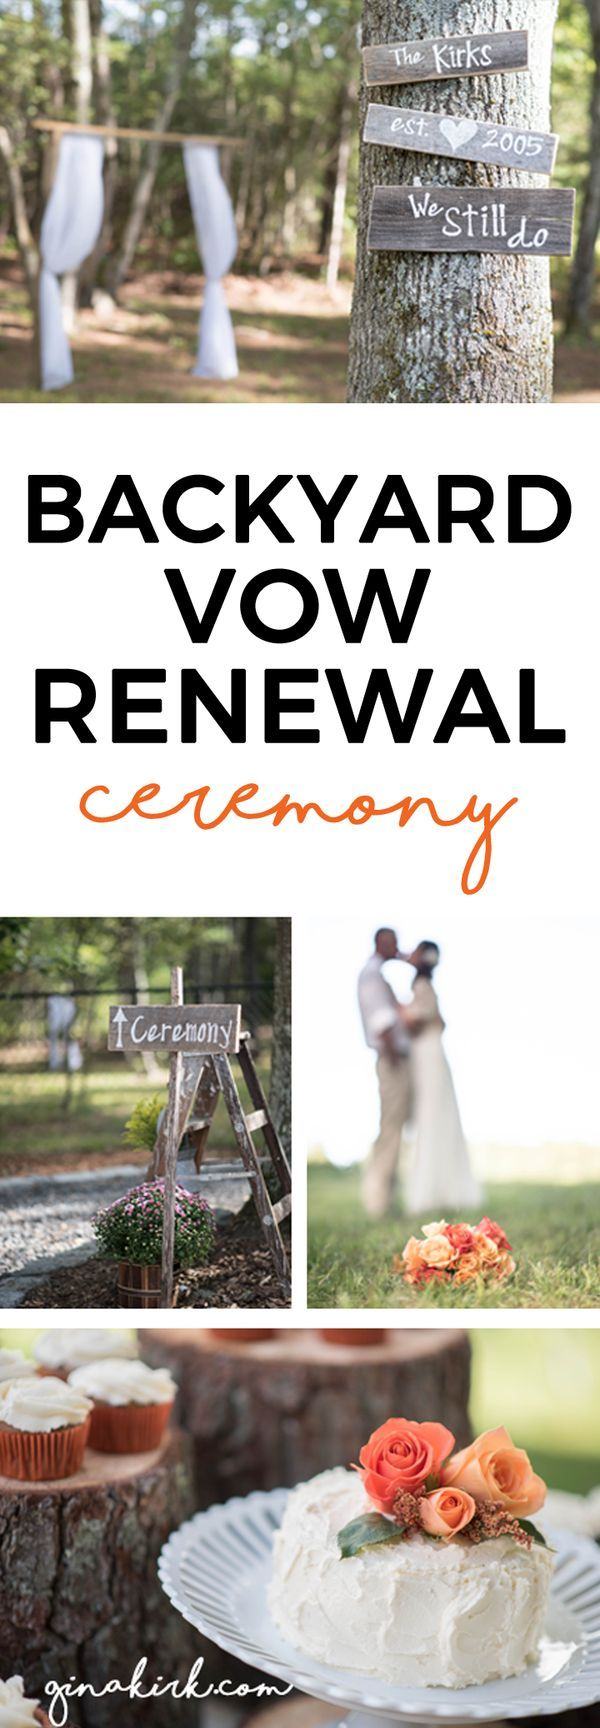 Celebrating 10 Years Our Backyard Vow Renewal Vintage